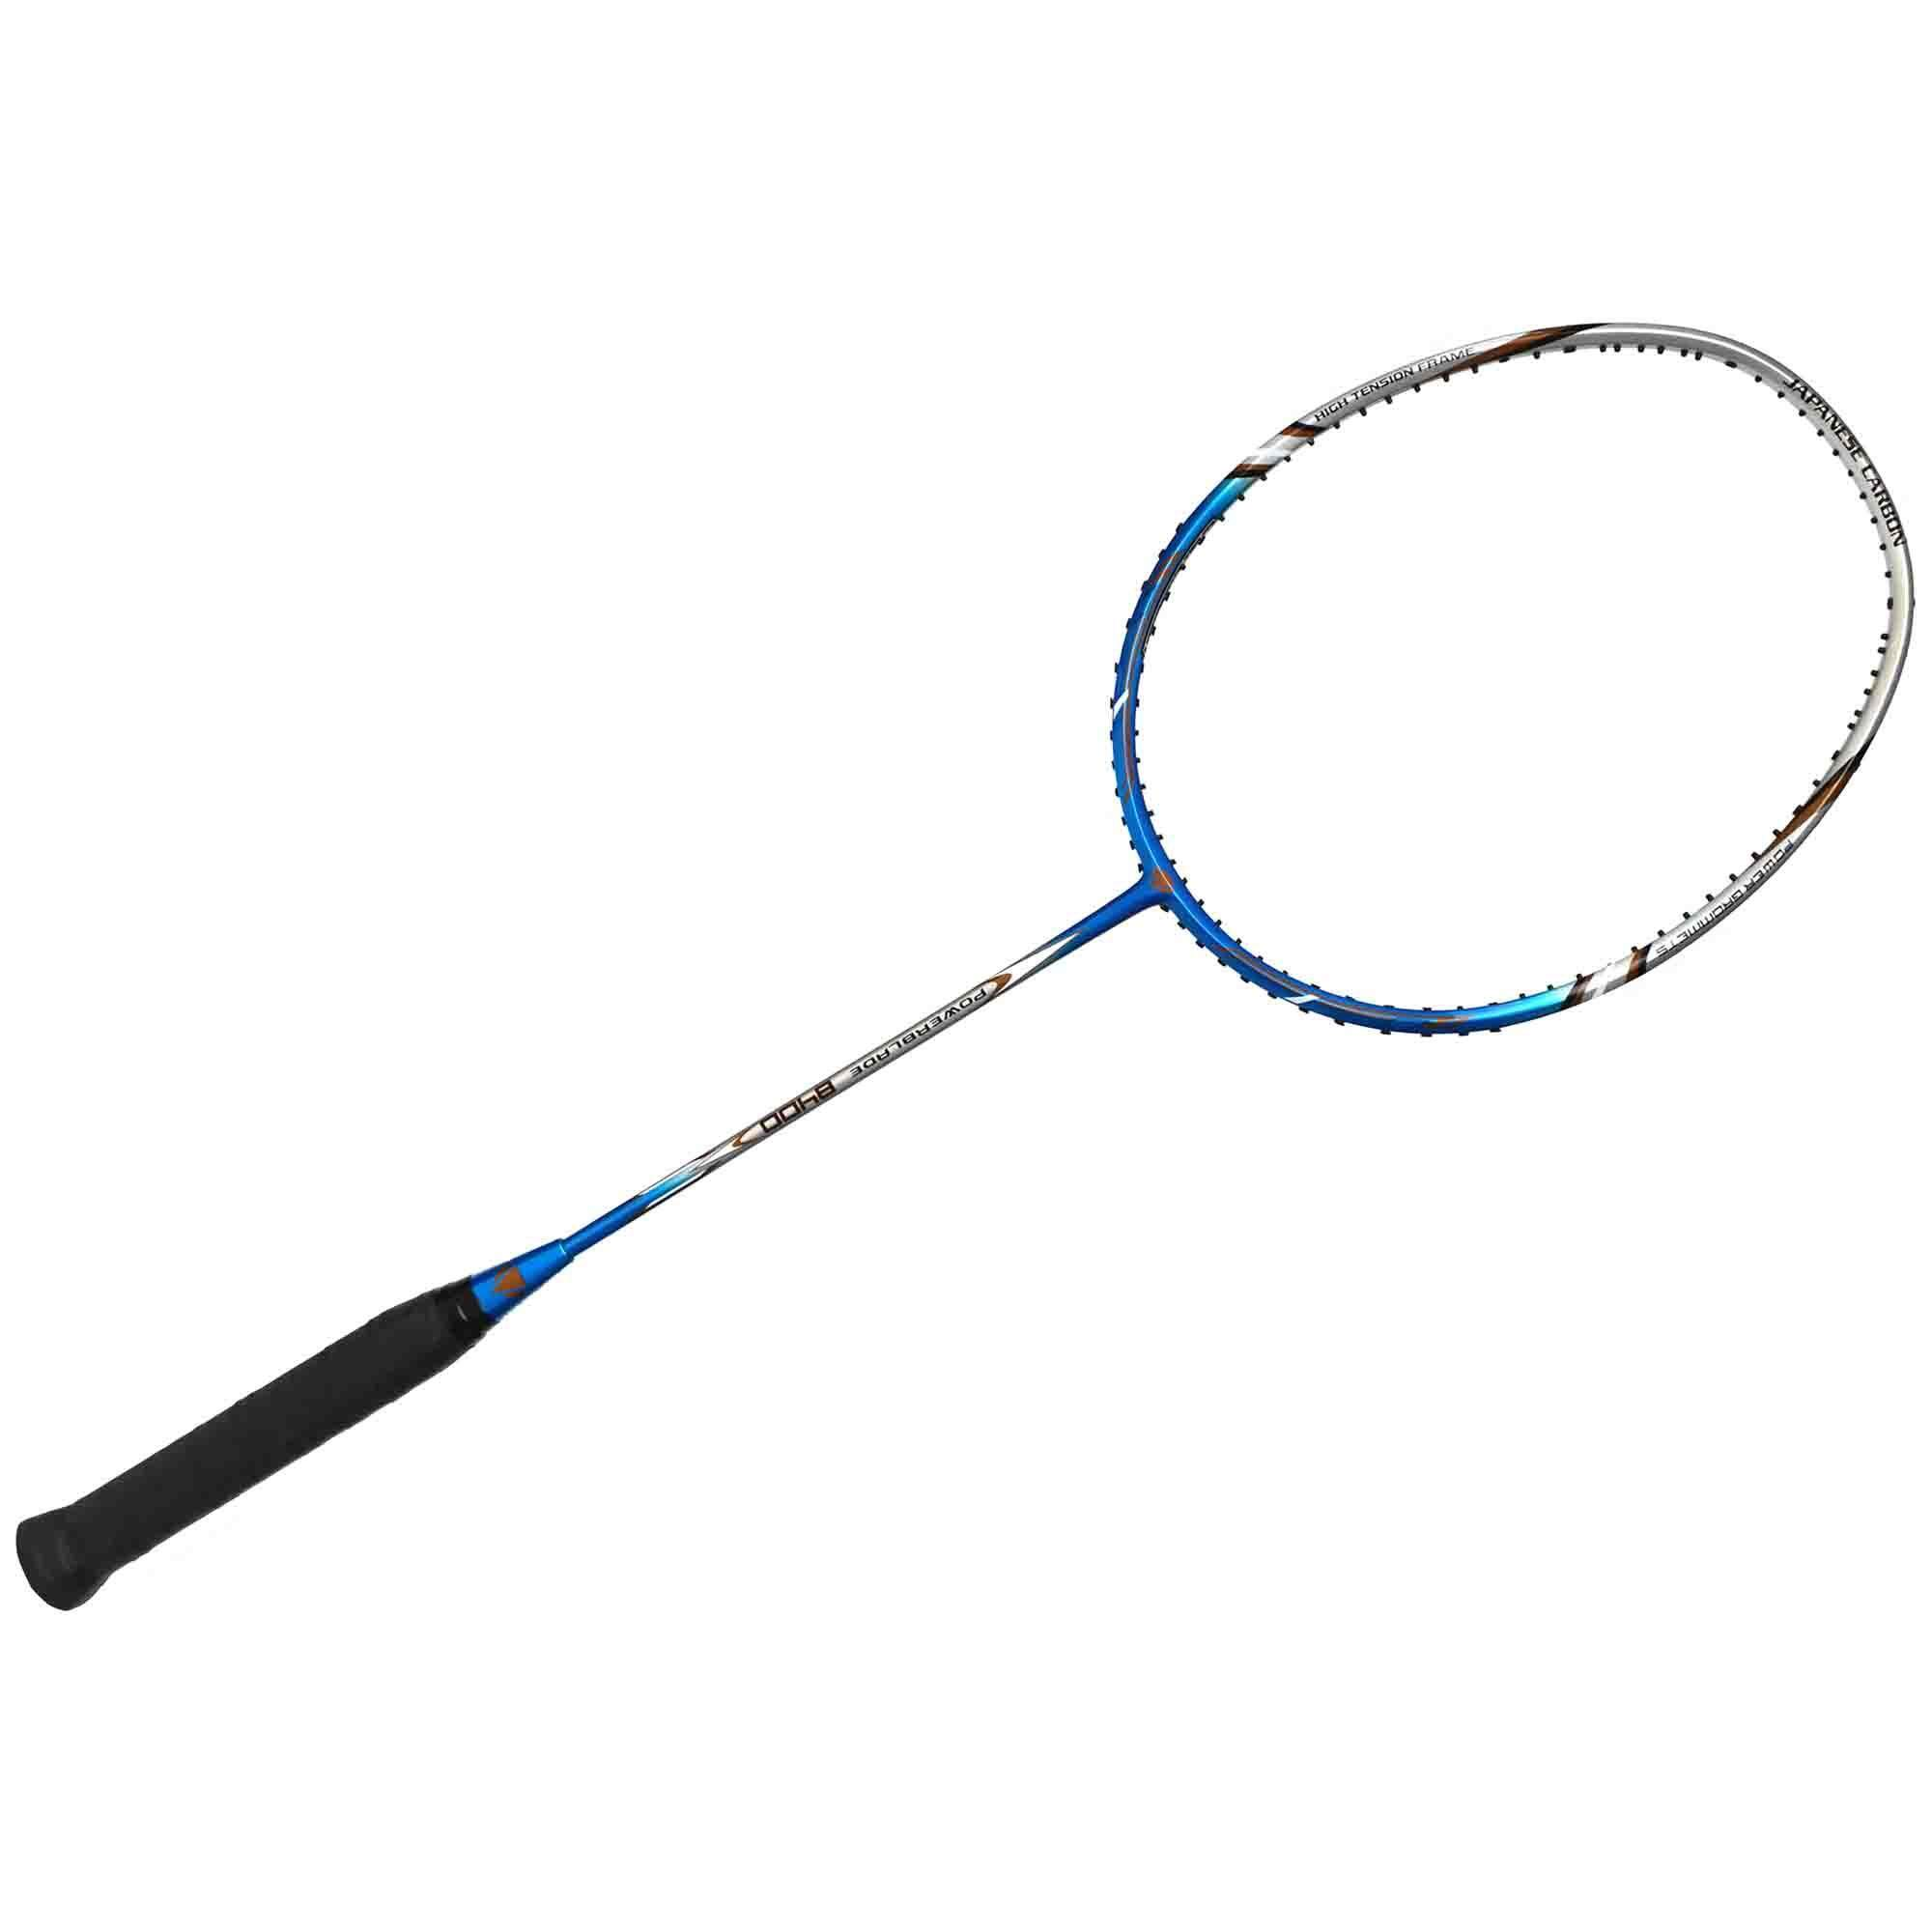 Carlton PowerBlade 8400 Badminton Racket